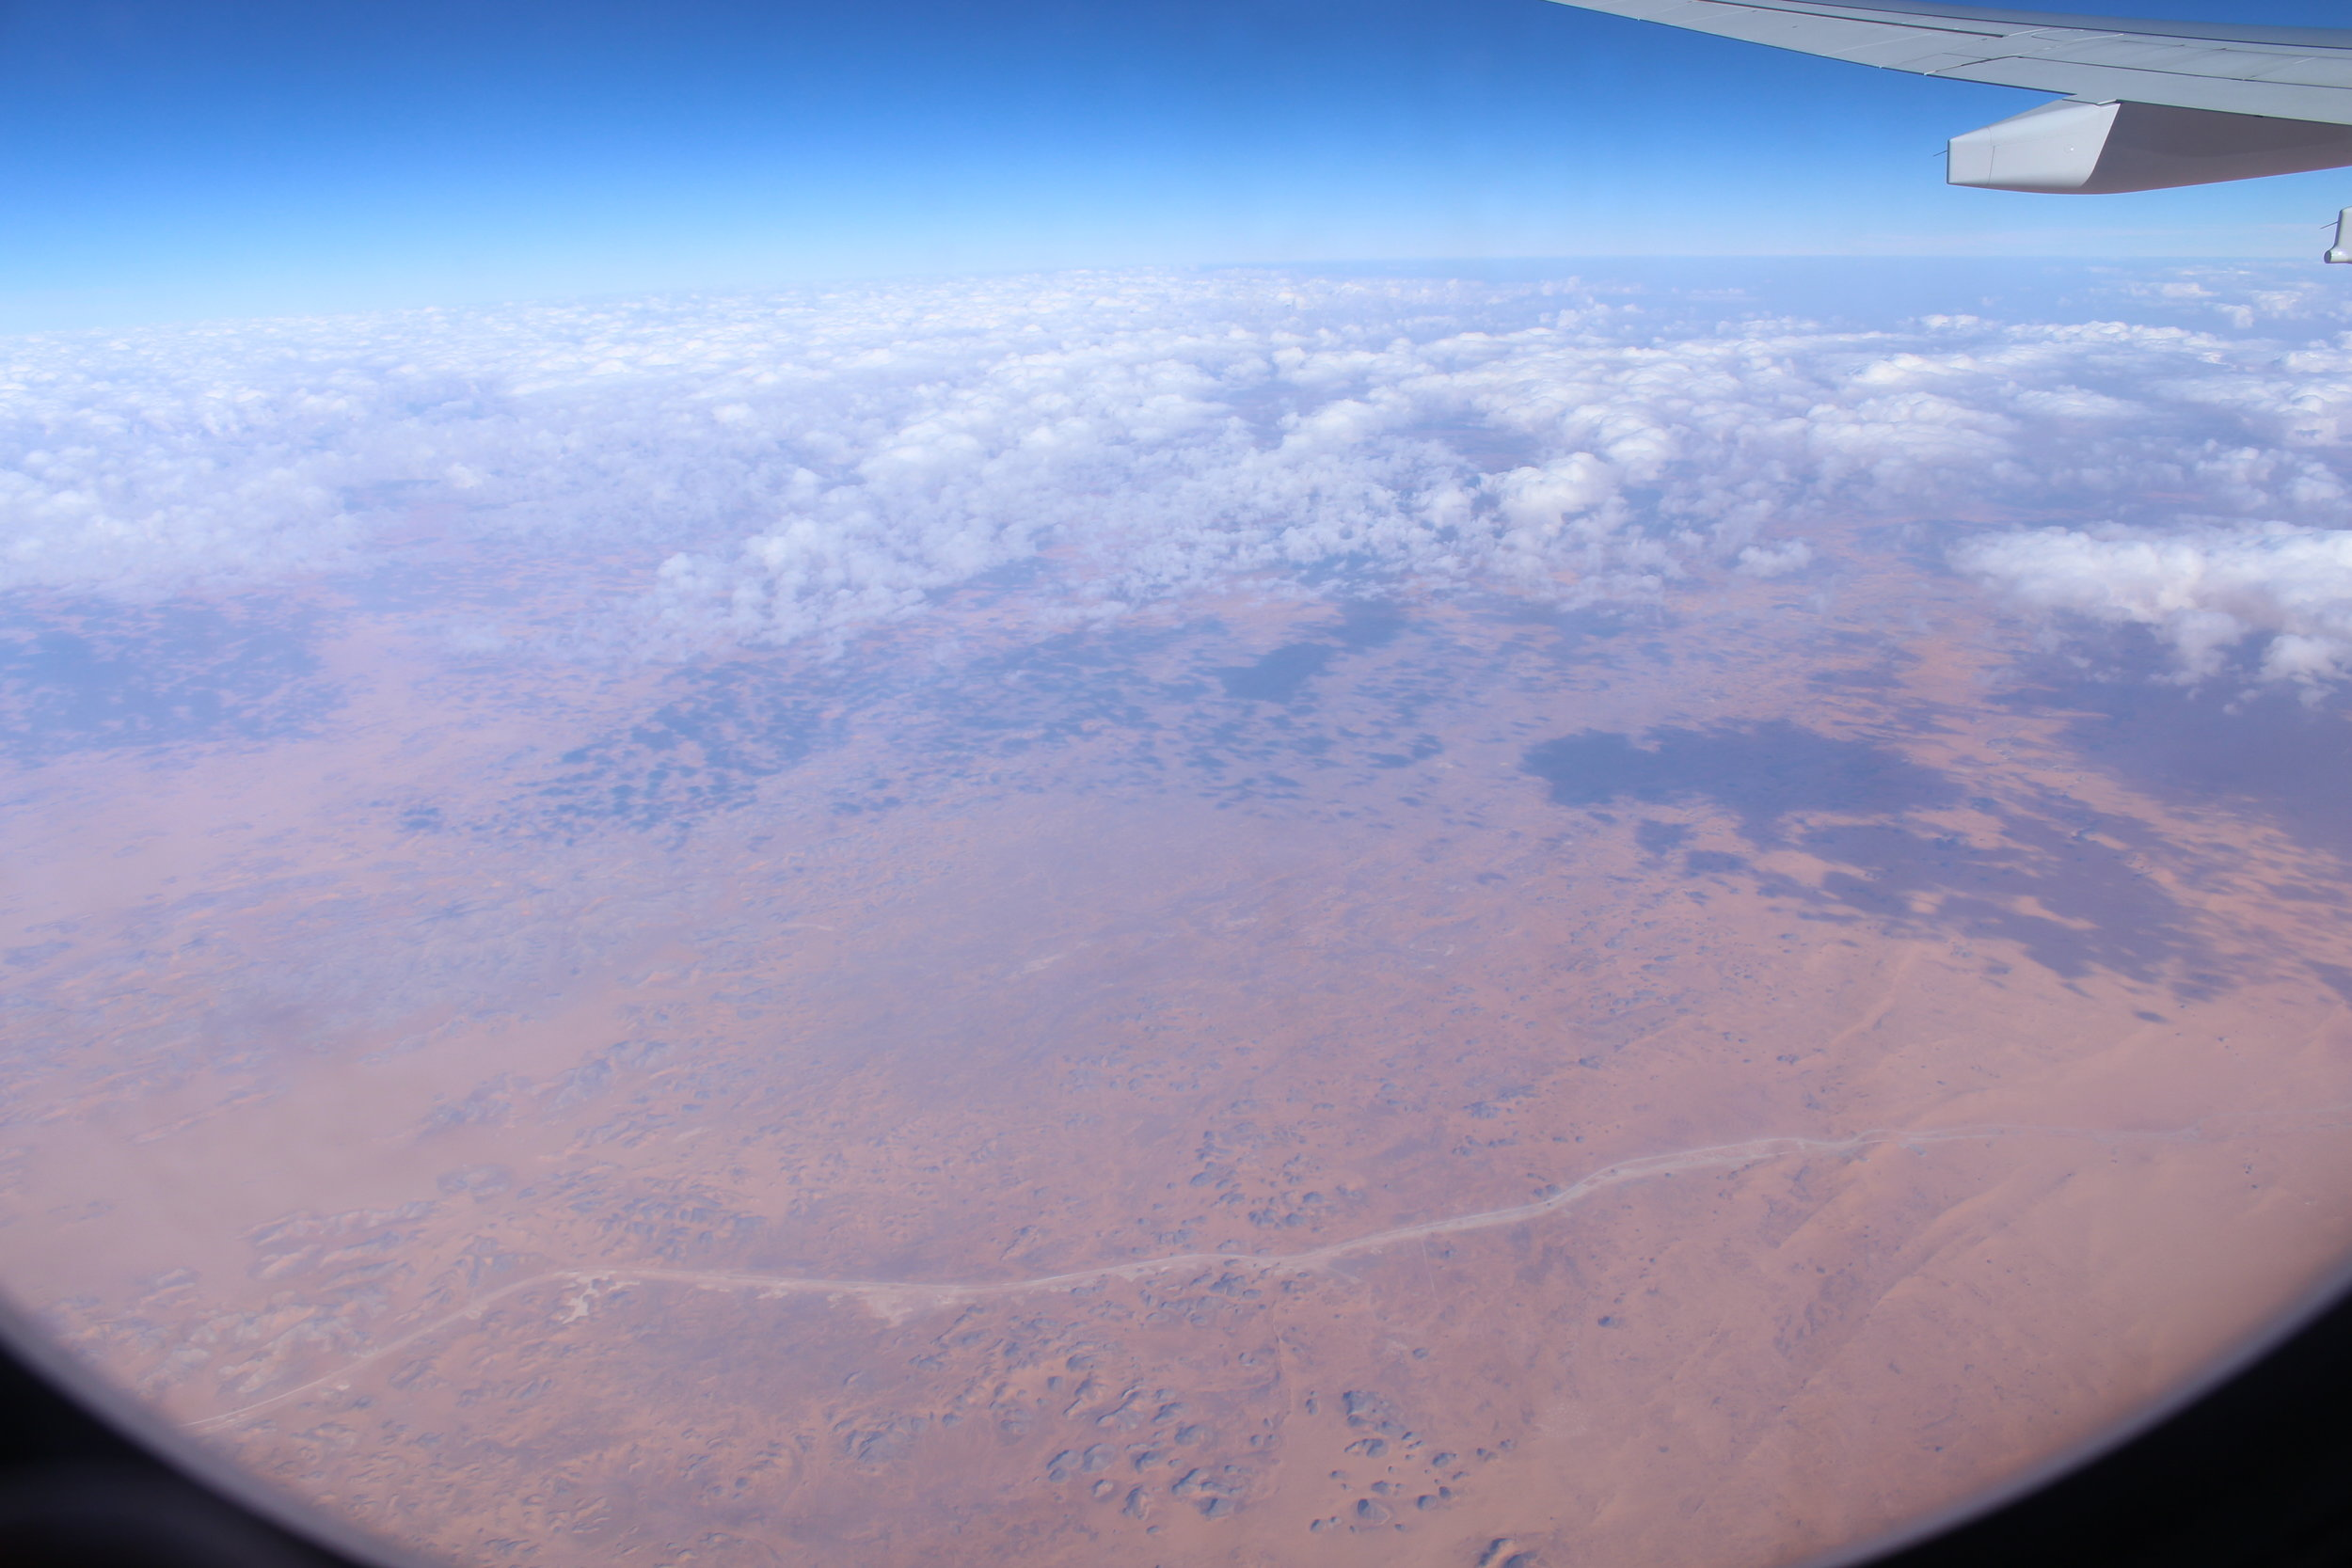 Now we're over the desert on our flight.